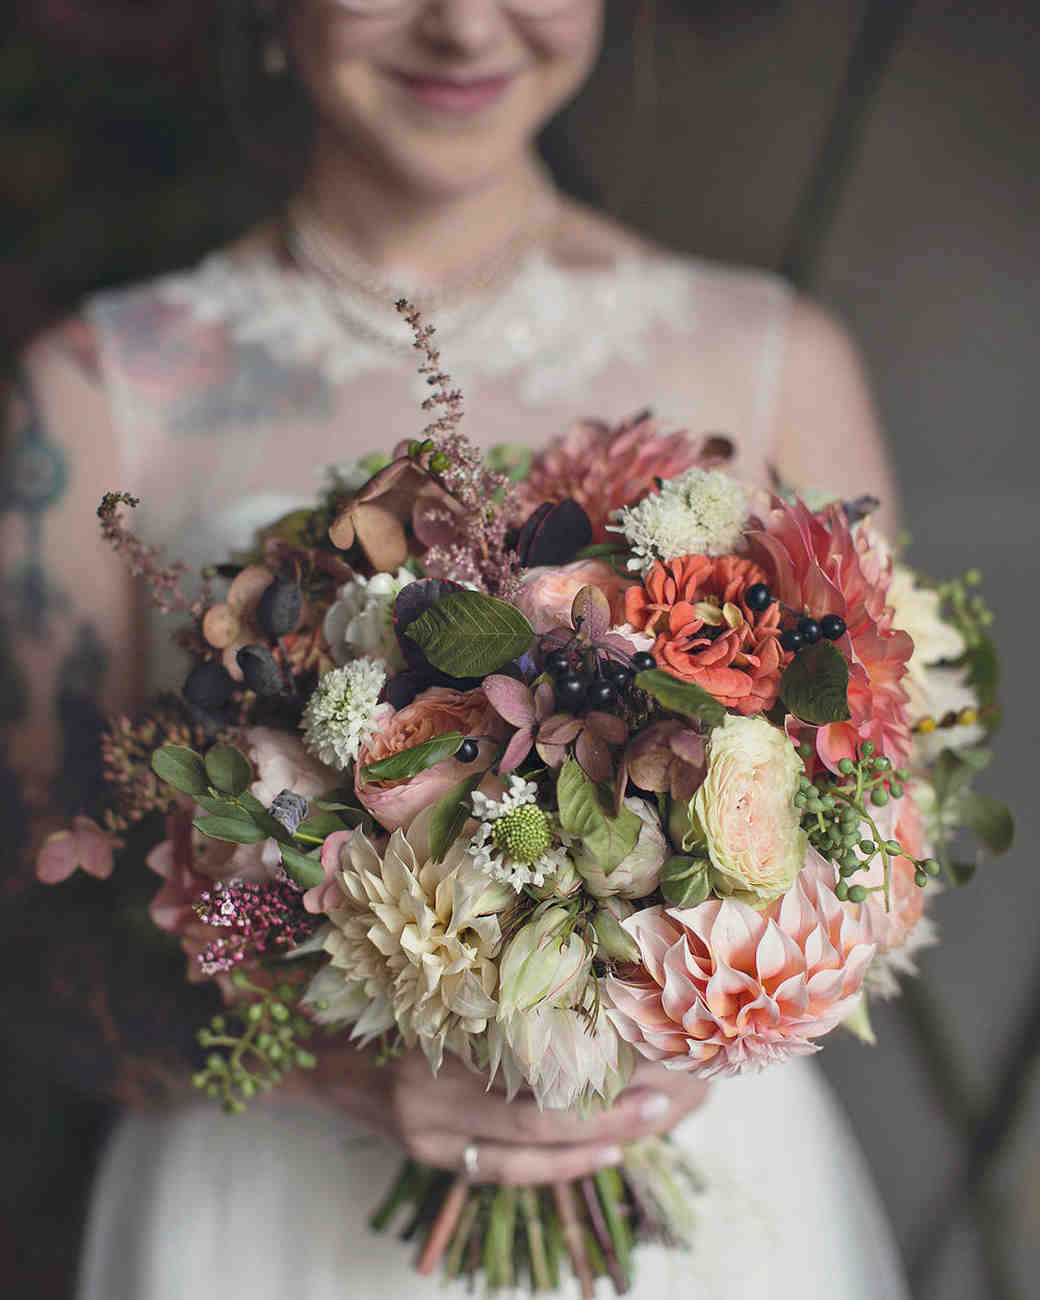 kristen-steve-flowerhouse-wedding-bouquet-6084-s113059-0616.jpg